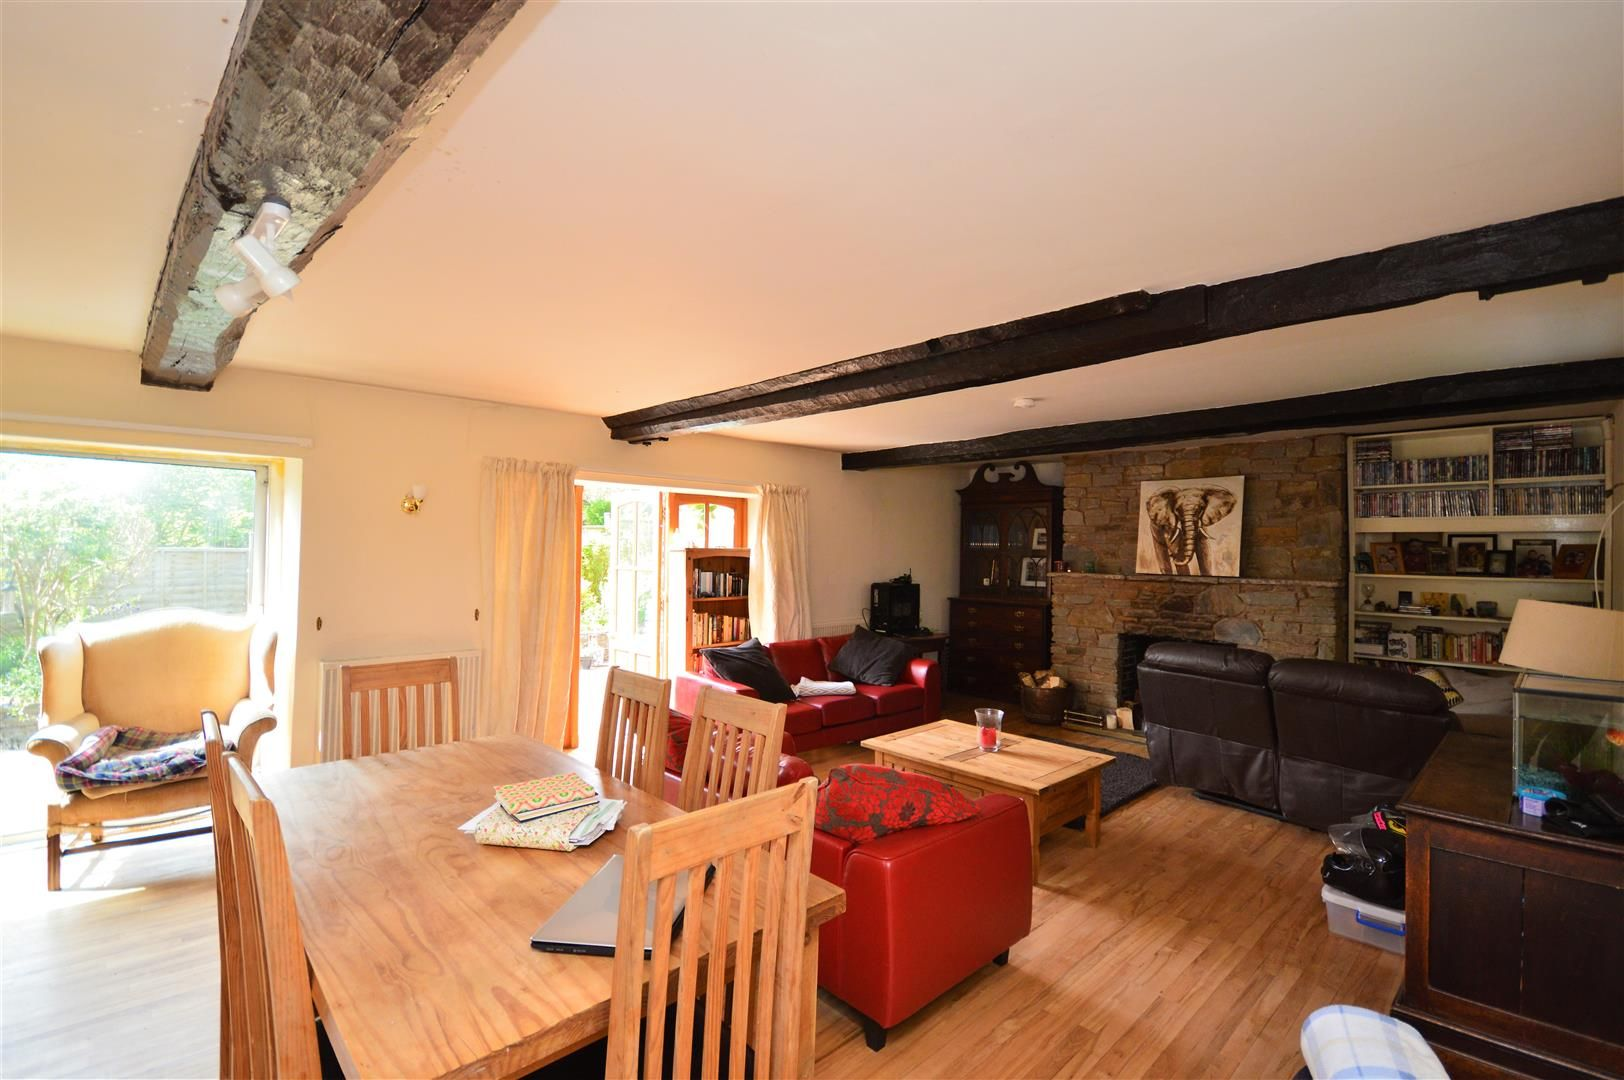 3 bed detached for sale in Bodenham  - Property Image 5